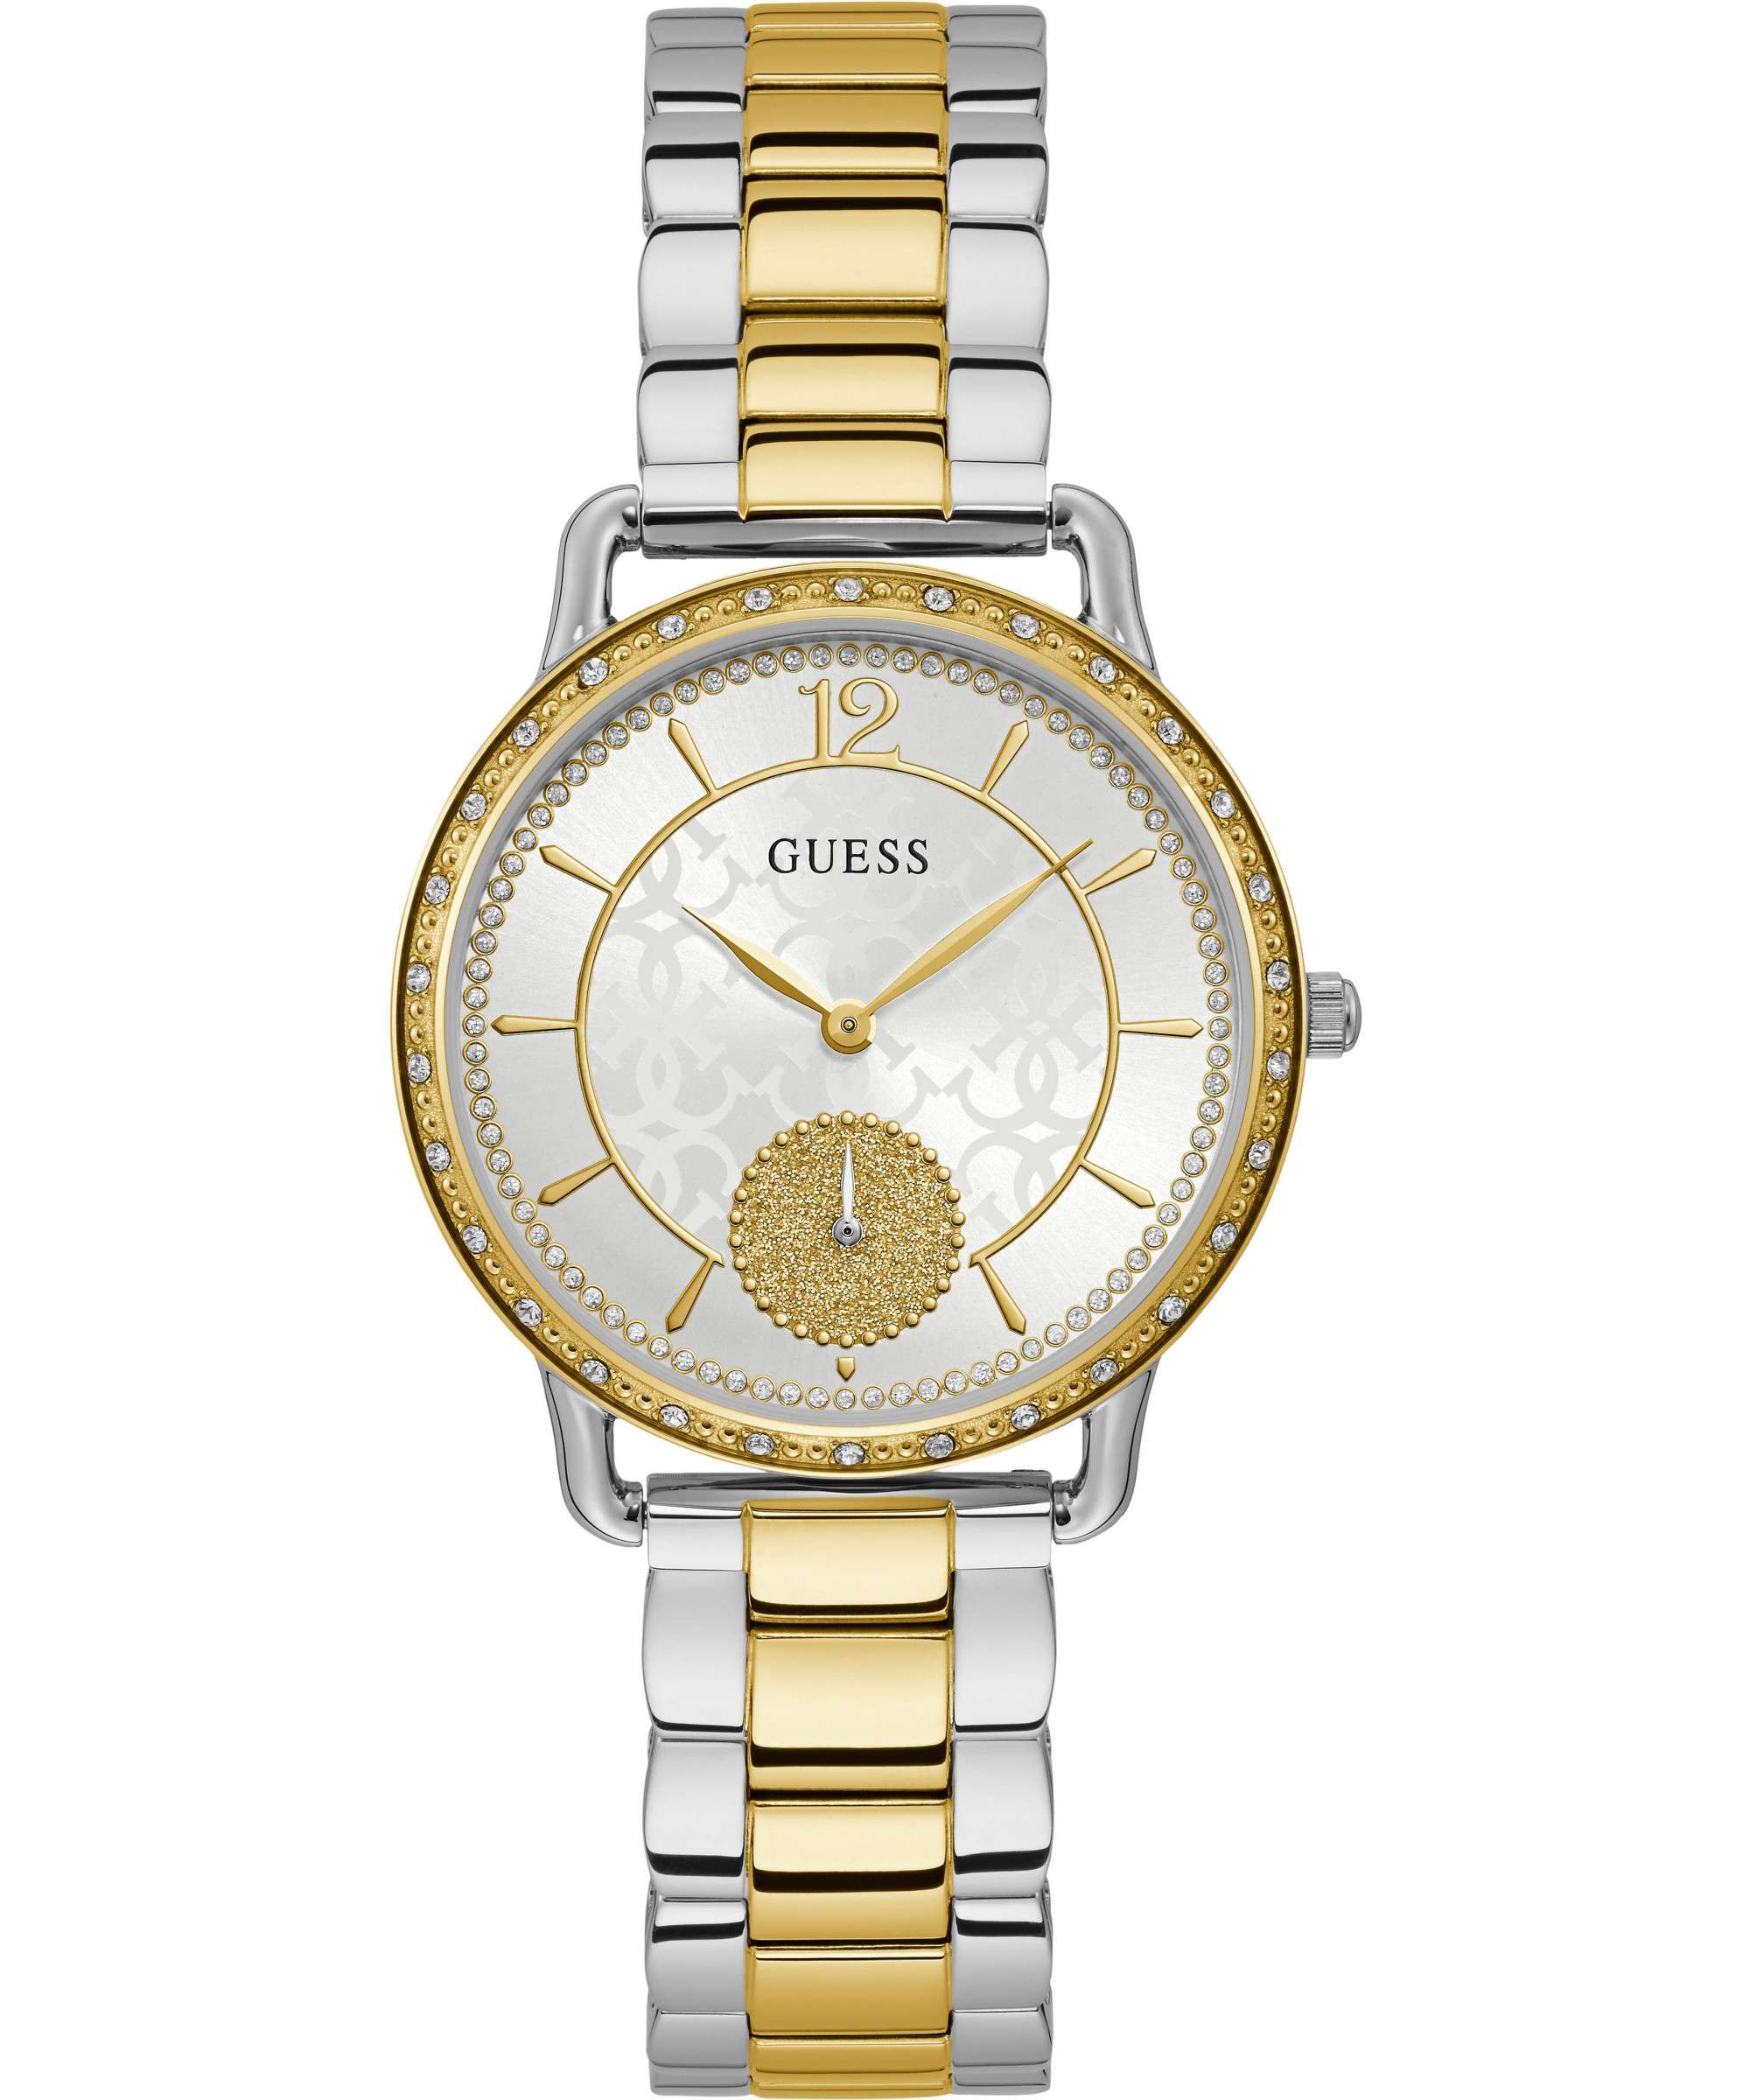 GUESS ASTRAL TWO TONE GOLD